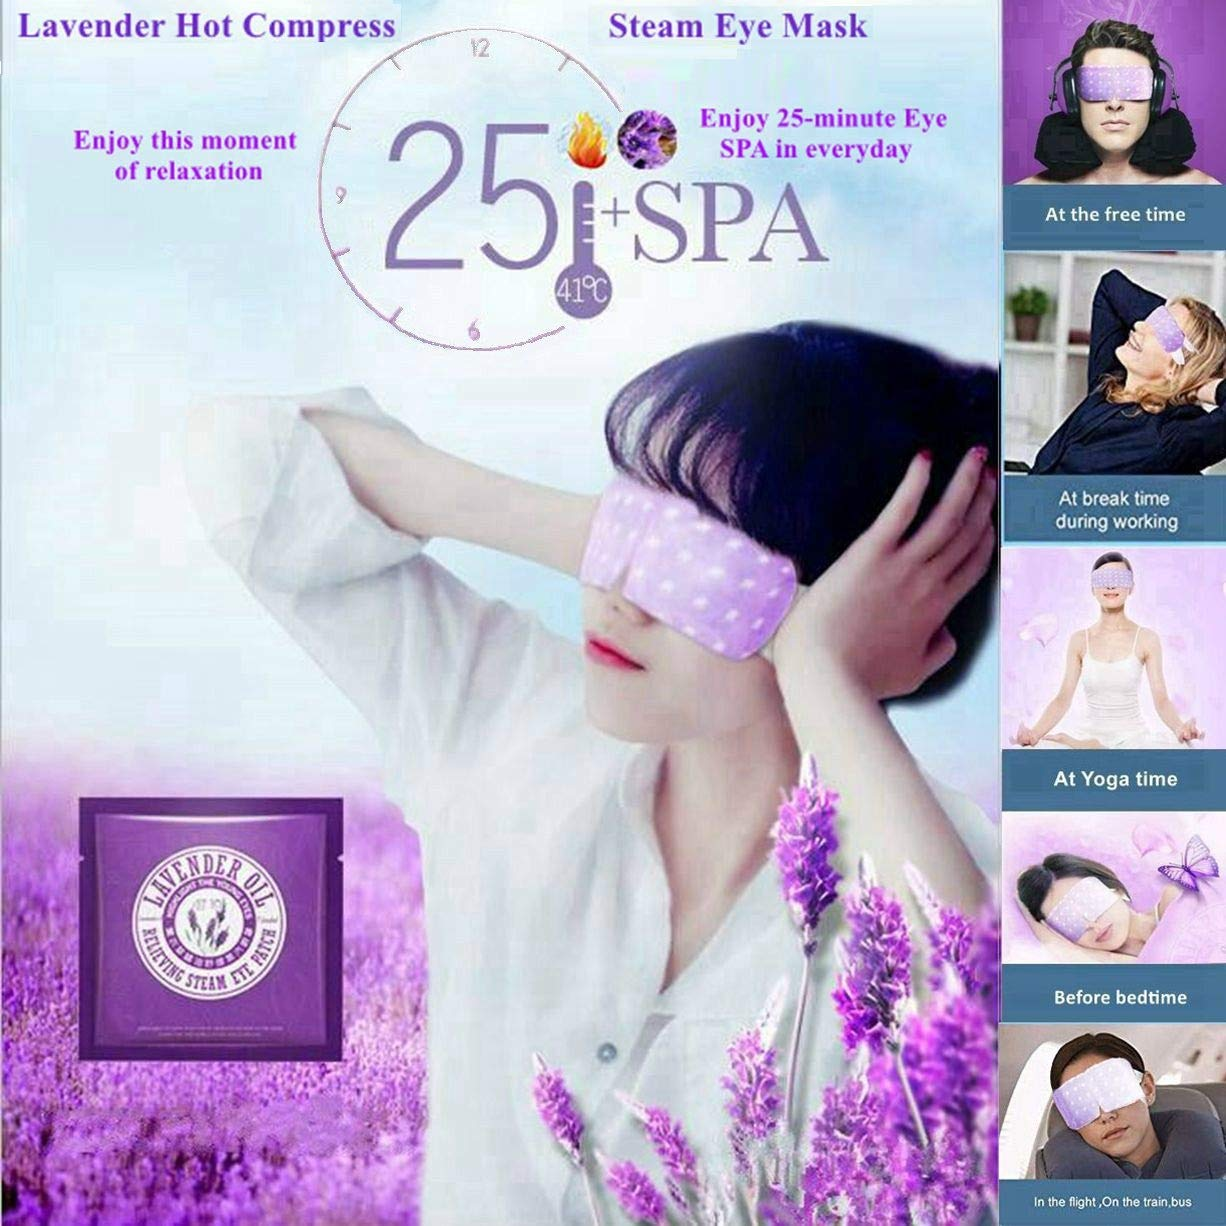 Dr pen A6 Multifunctional SPA Professional Care Equipment ✏ w/Replacement Parts + bonus 2 Lavender Steam Eye Masks (with 36 x Nano Chips, Dr.pen A6)